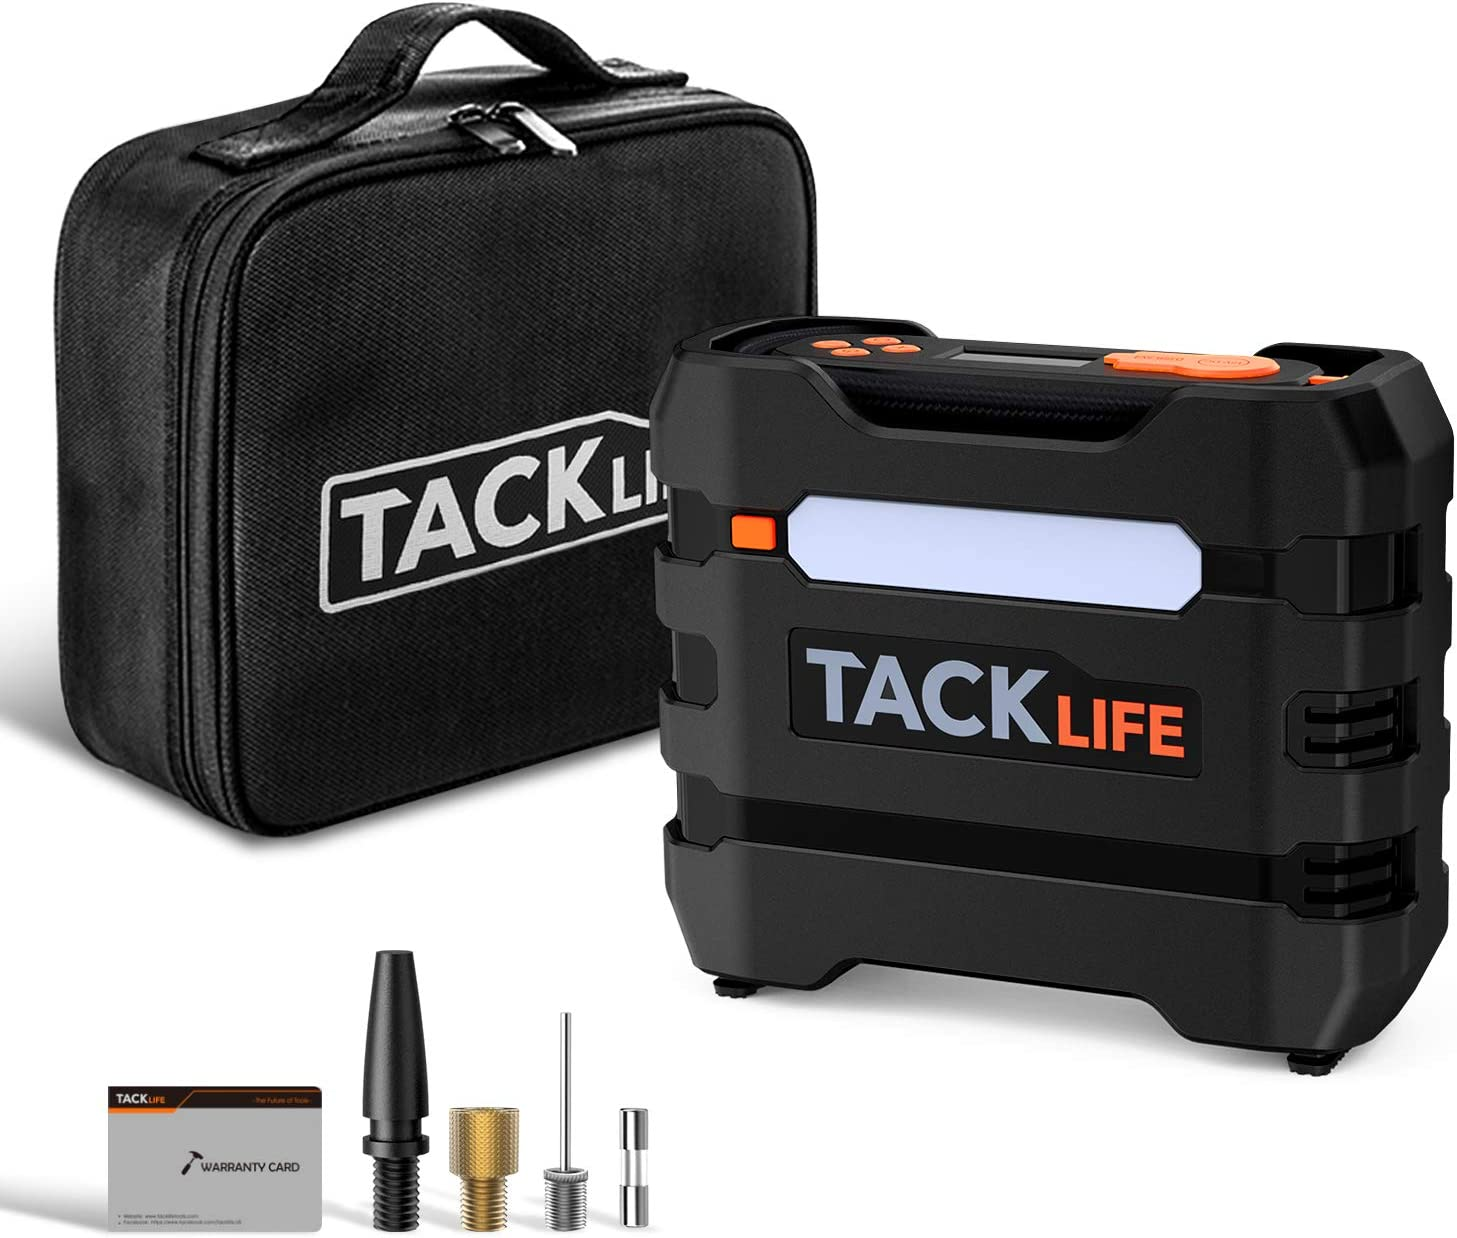 TACKLIFE 12V DC Digital Tire Inflator Portable Air Compressor, Auto Tire Pump with Overheat Protection, LCD Display, Emergency Light, 3 Nozzles and Extra Fuse